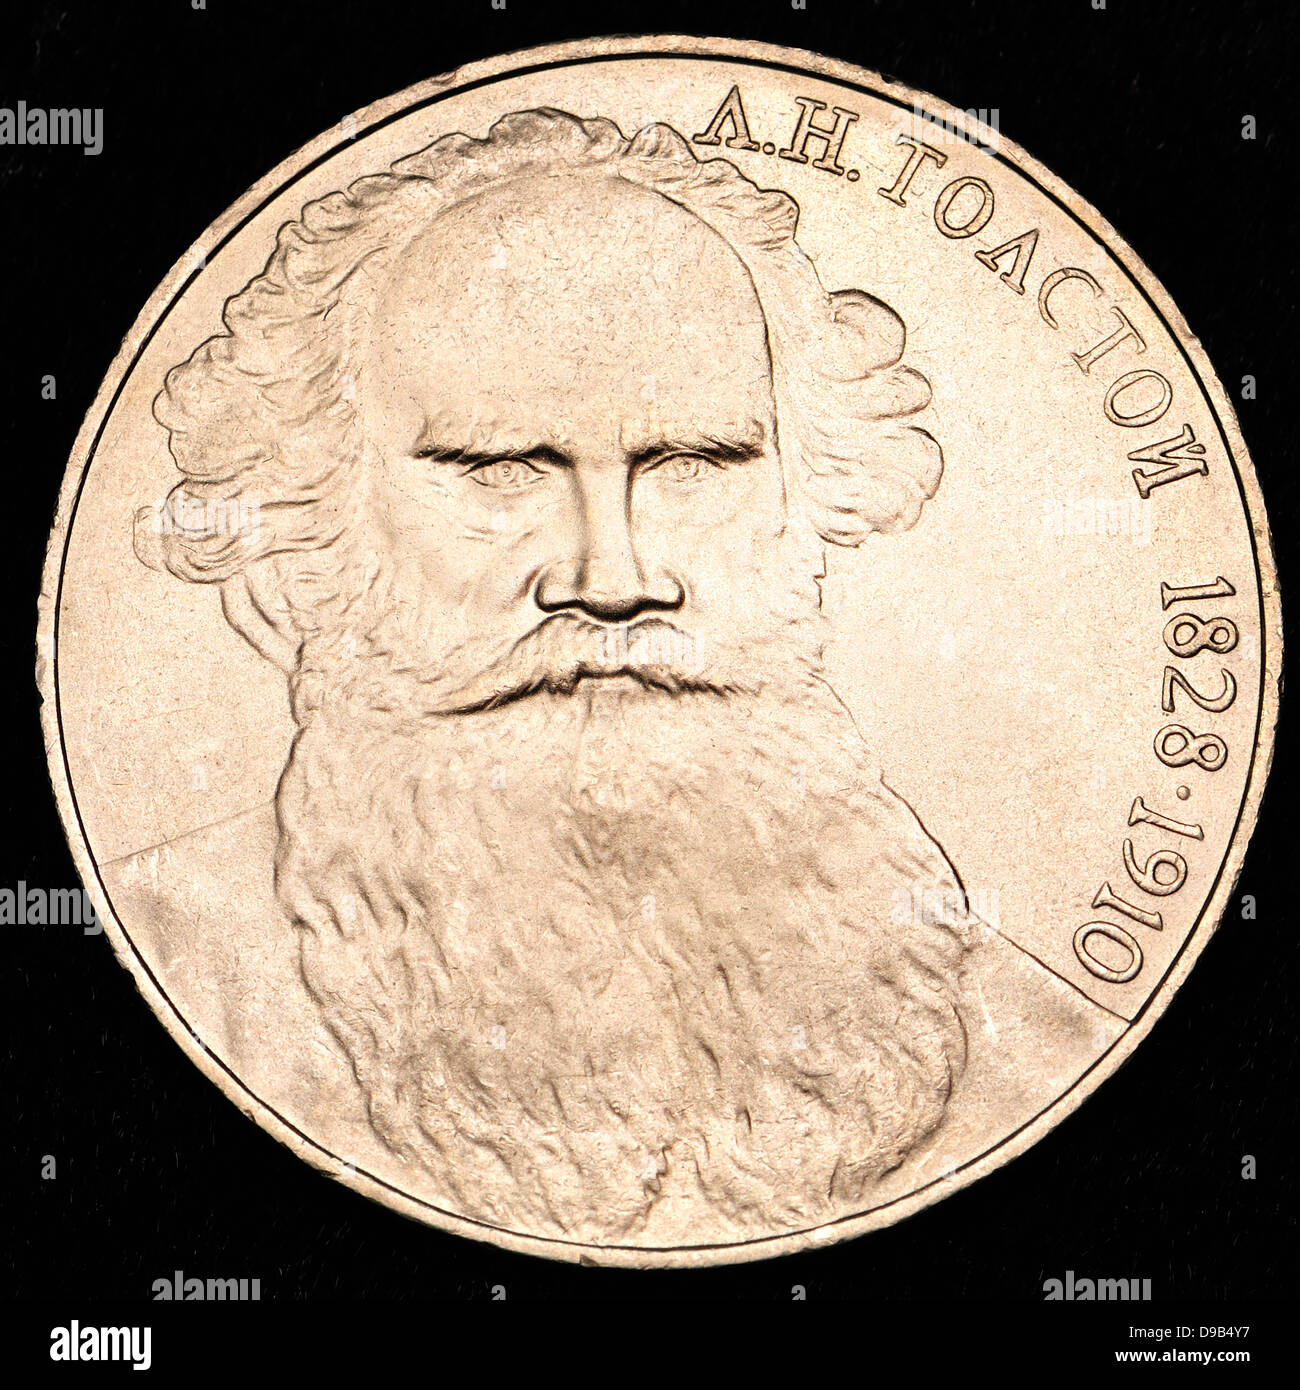 Russian coin - Leon Tolstoy - Stock Image